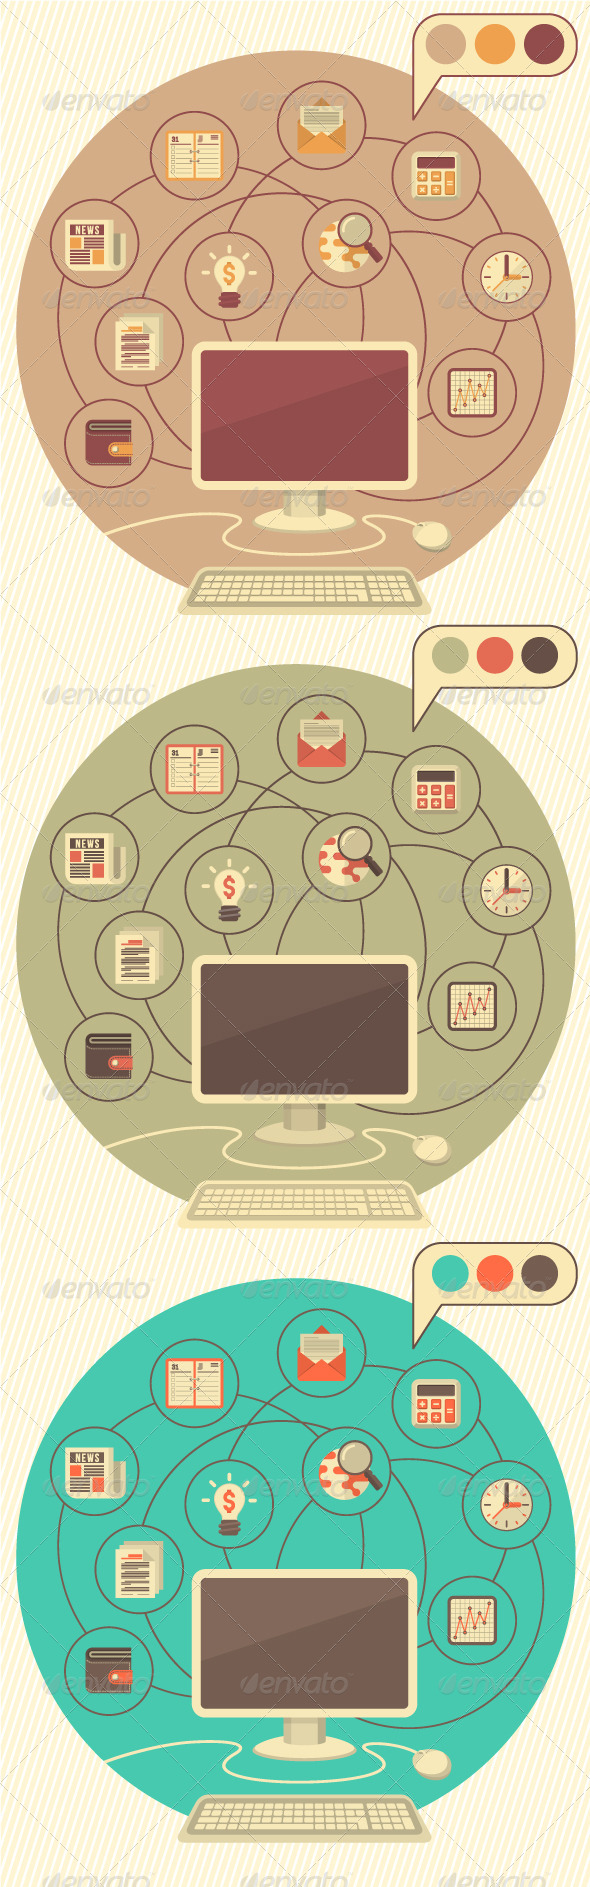 GraphicRiver Computer as a Tool for Business 5789155